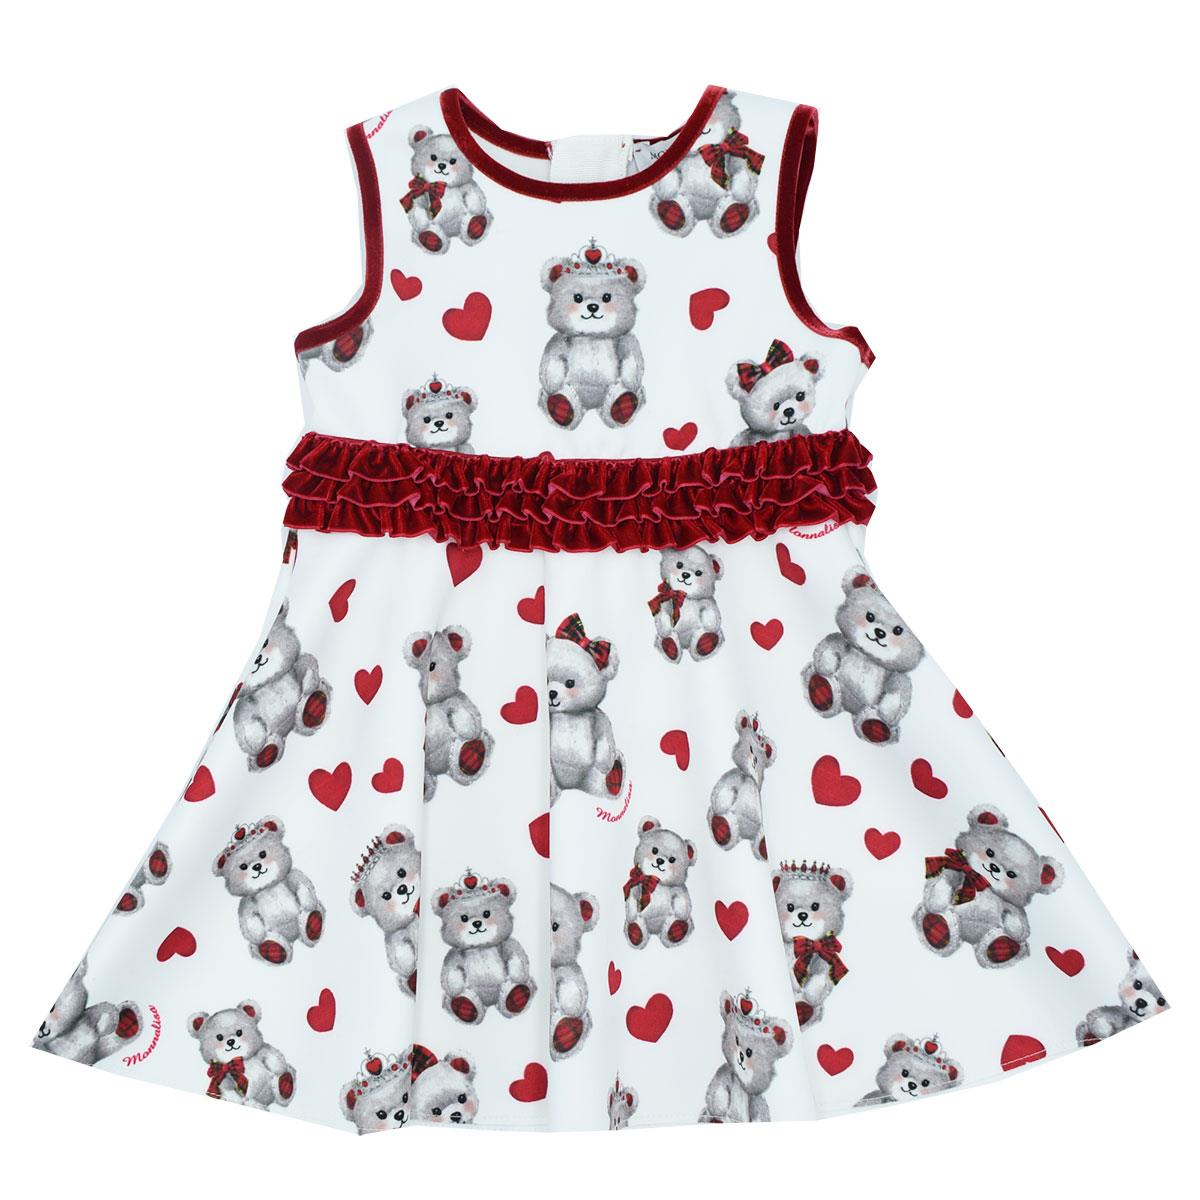 Baby Girls White & Red Printed Dress